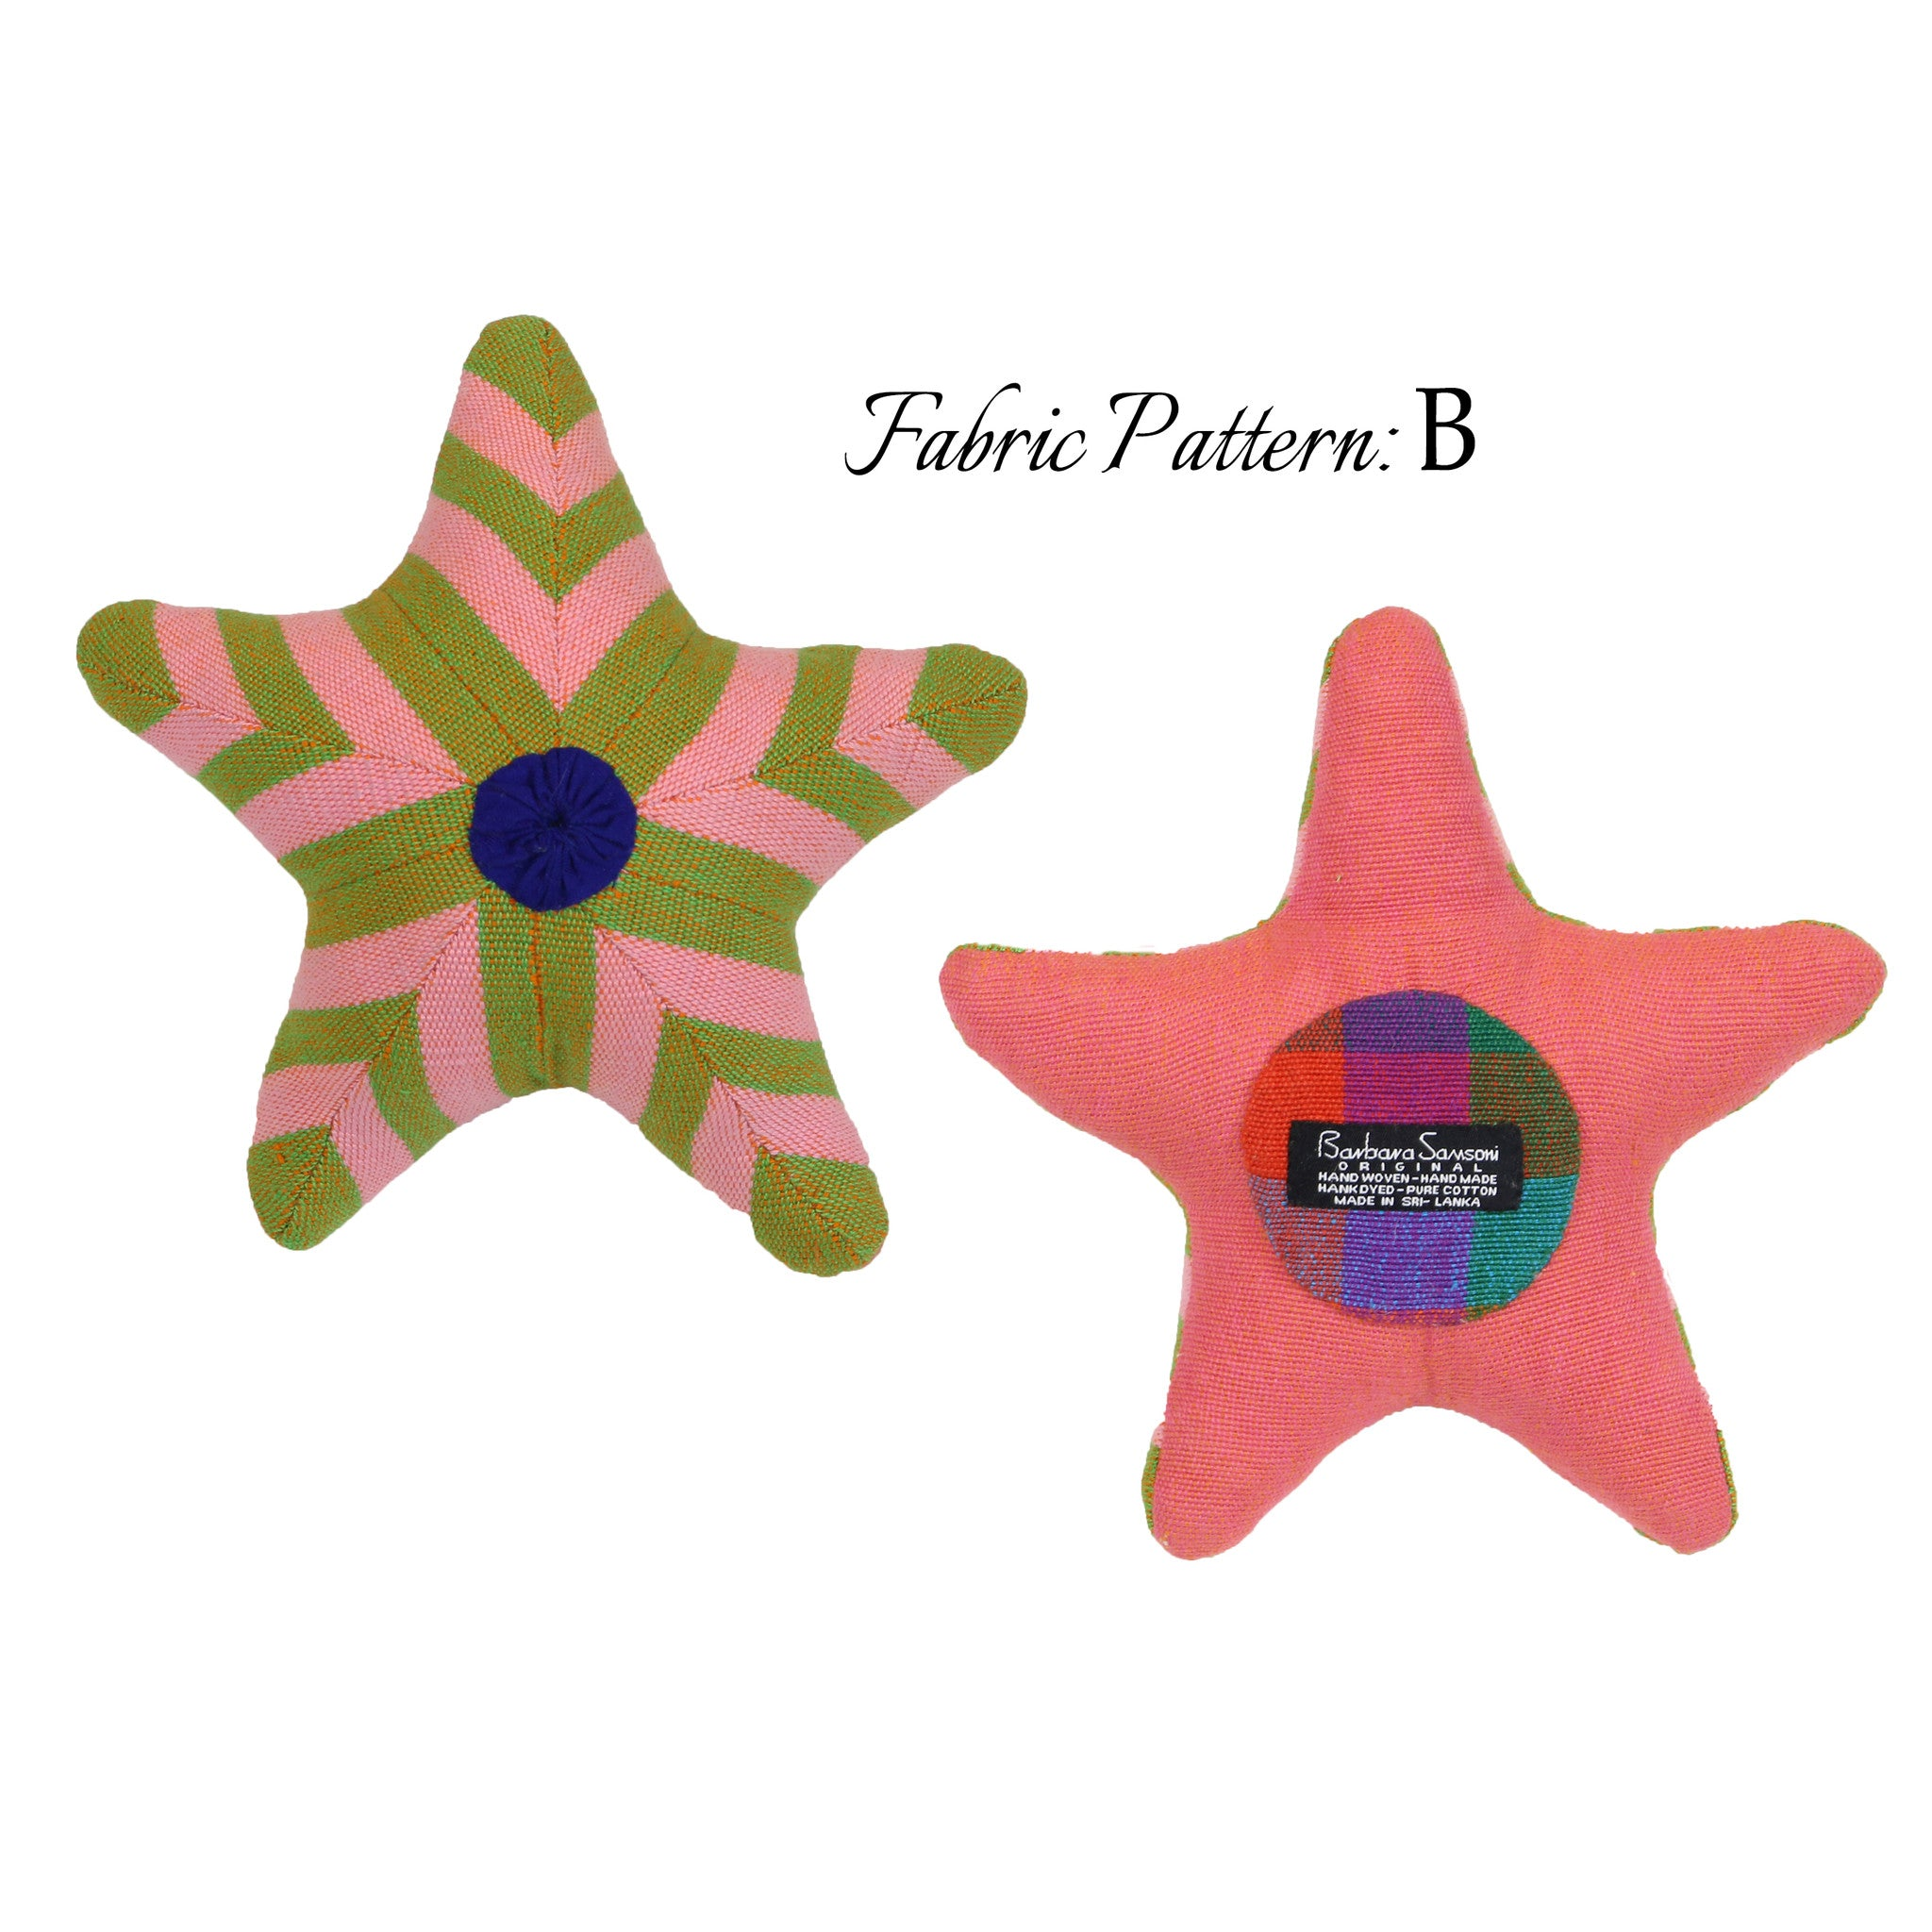 Stacey, the Starfish – pattern B (front & back view)